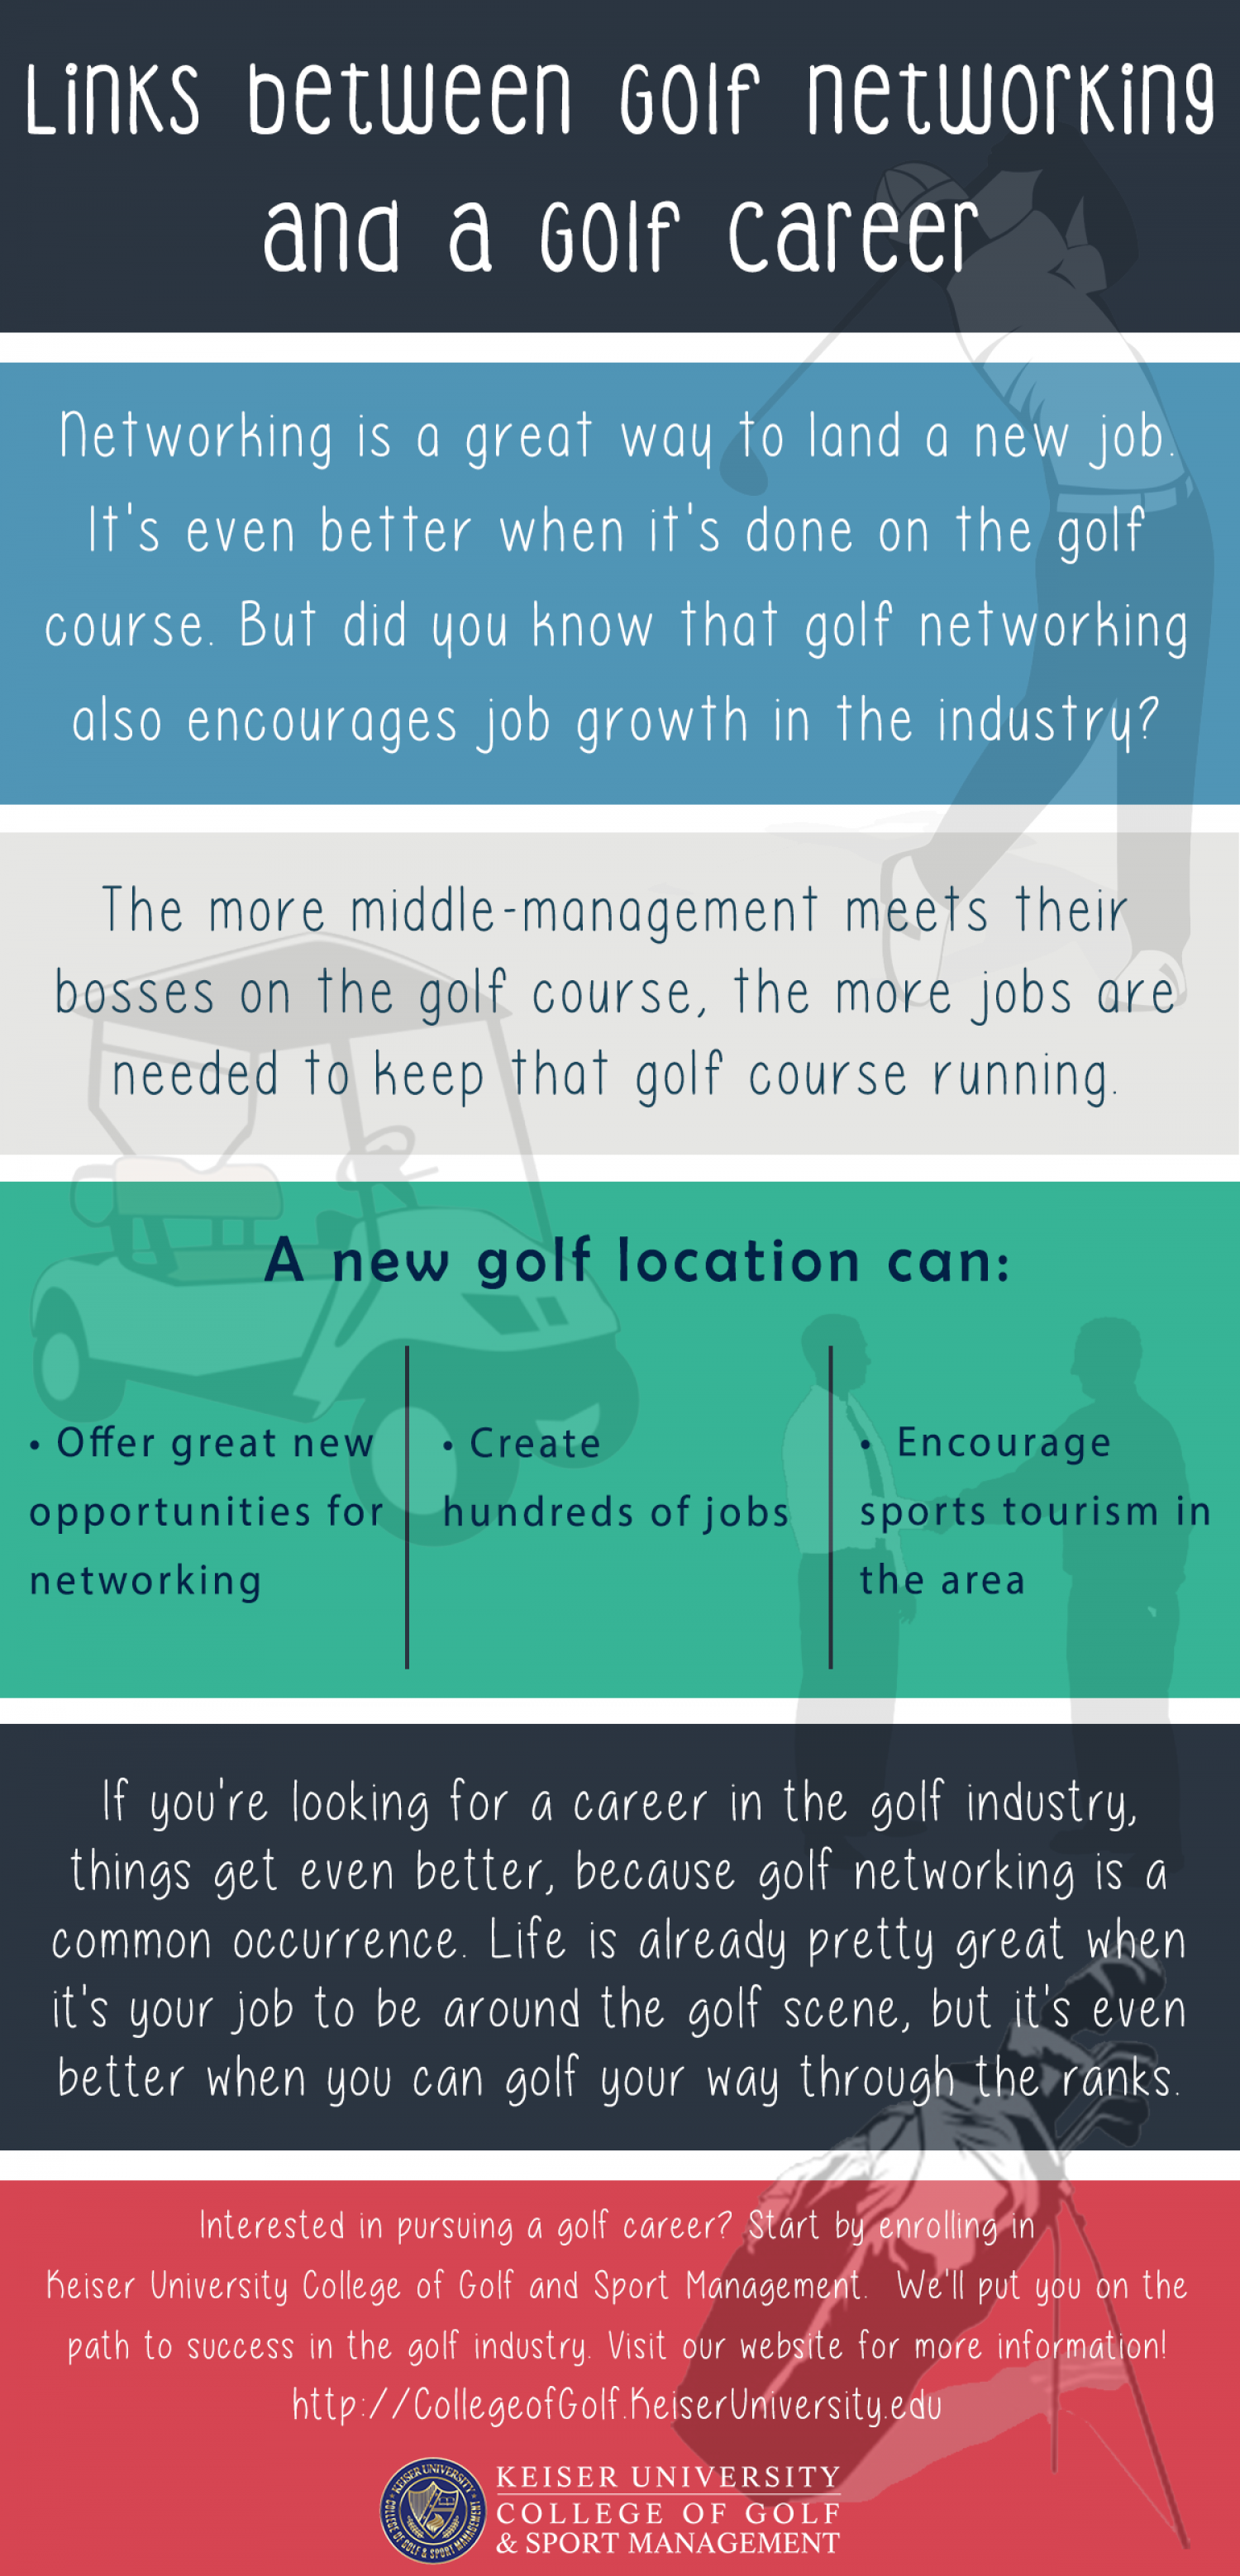 Links between Golf Networking and a Golf Career Infographic